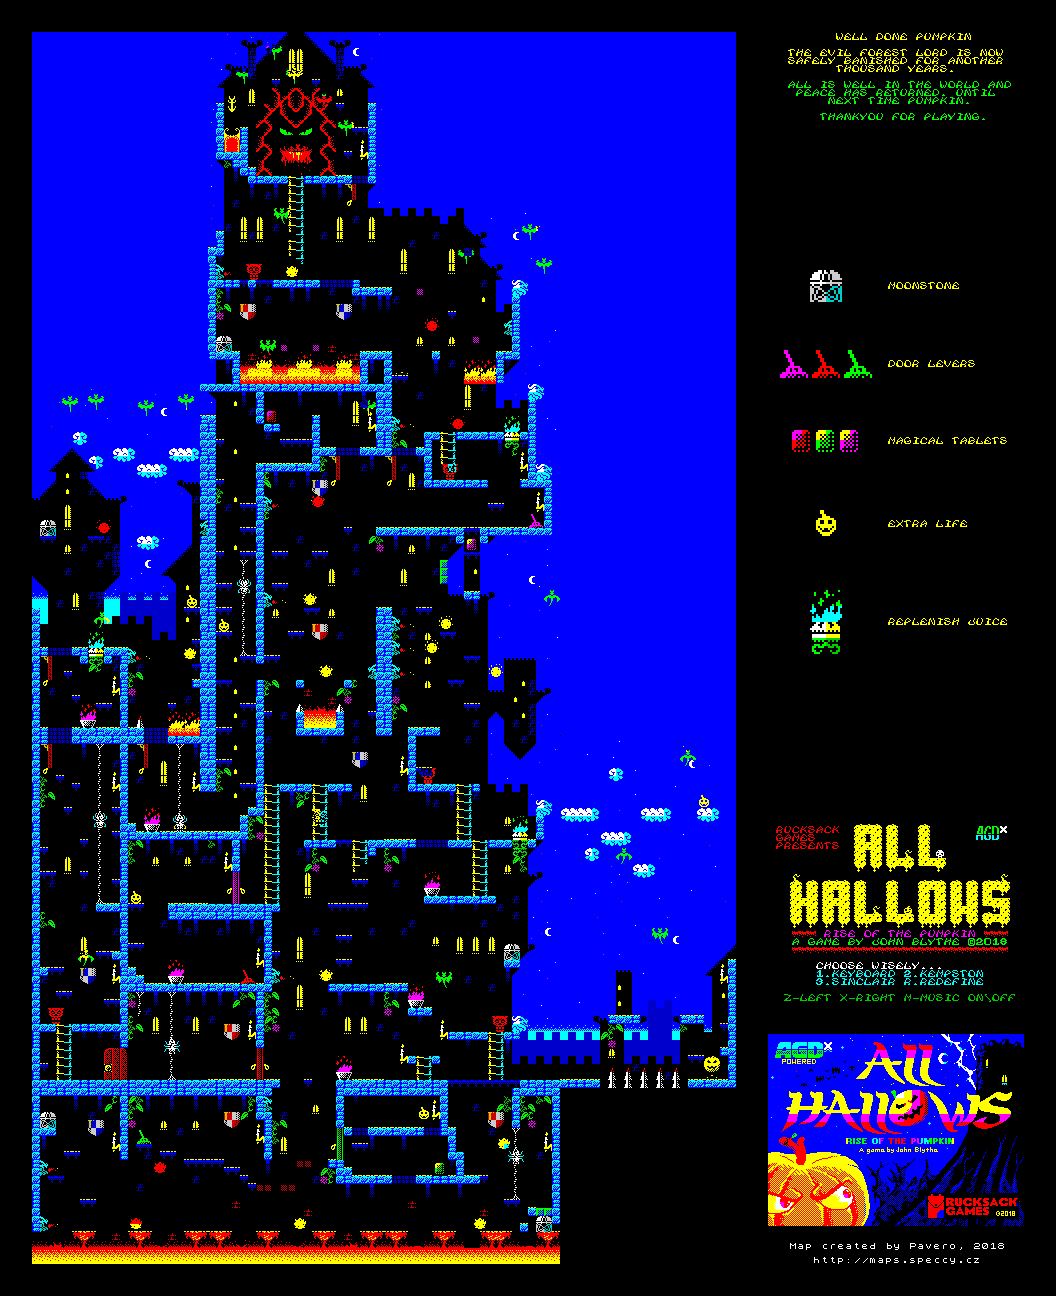 All Hallows - Rise of the Pumpkin - The Map